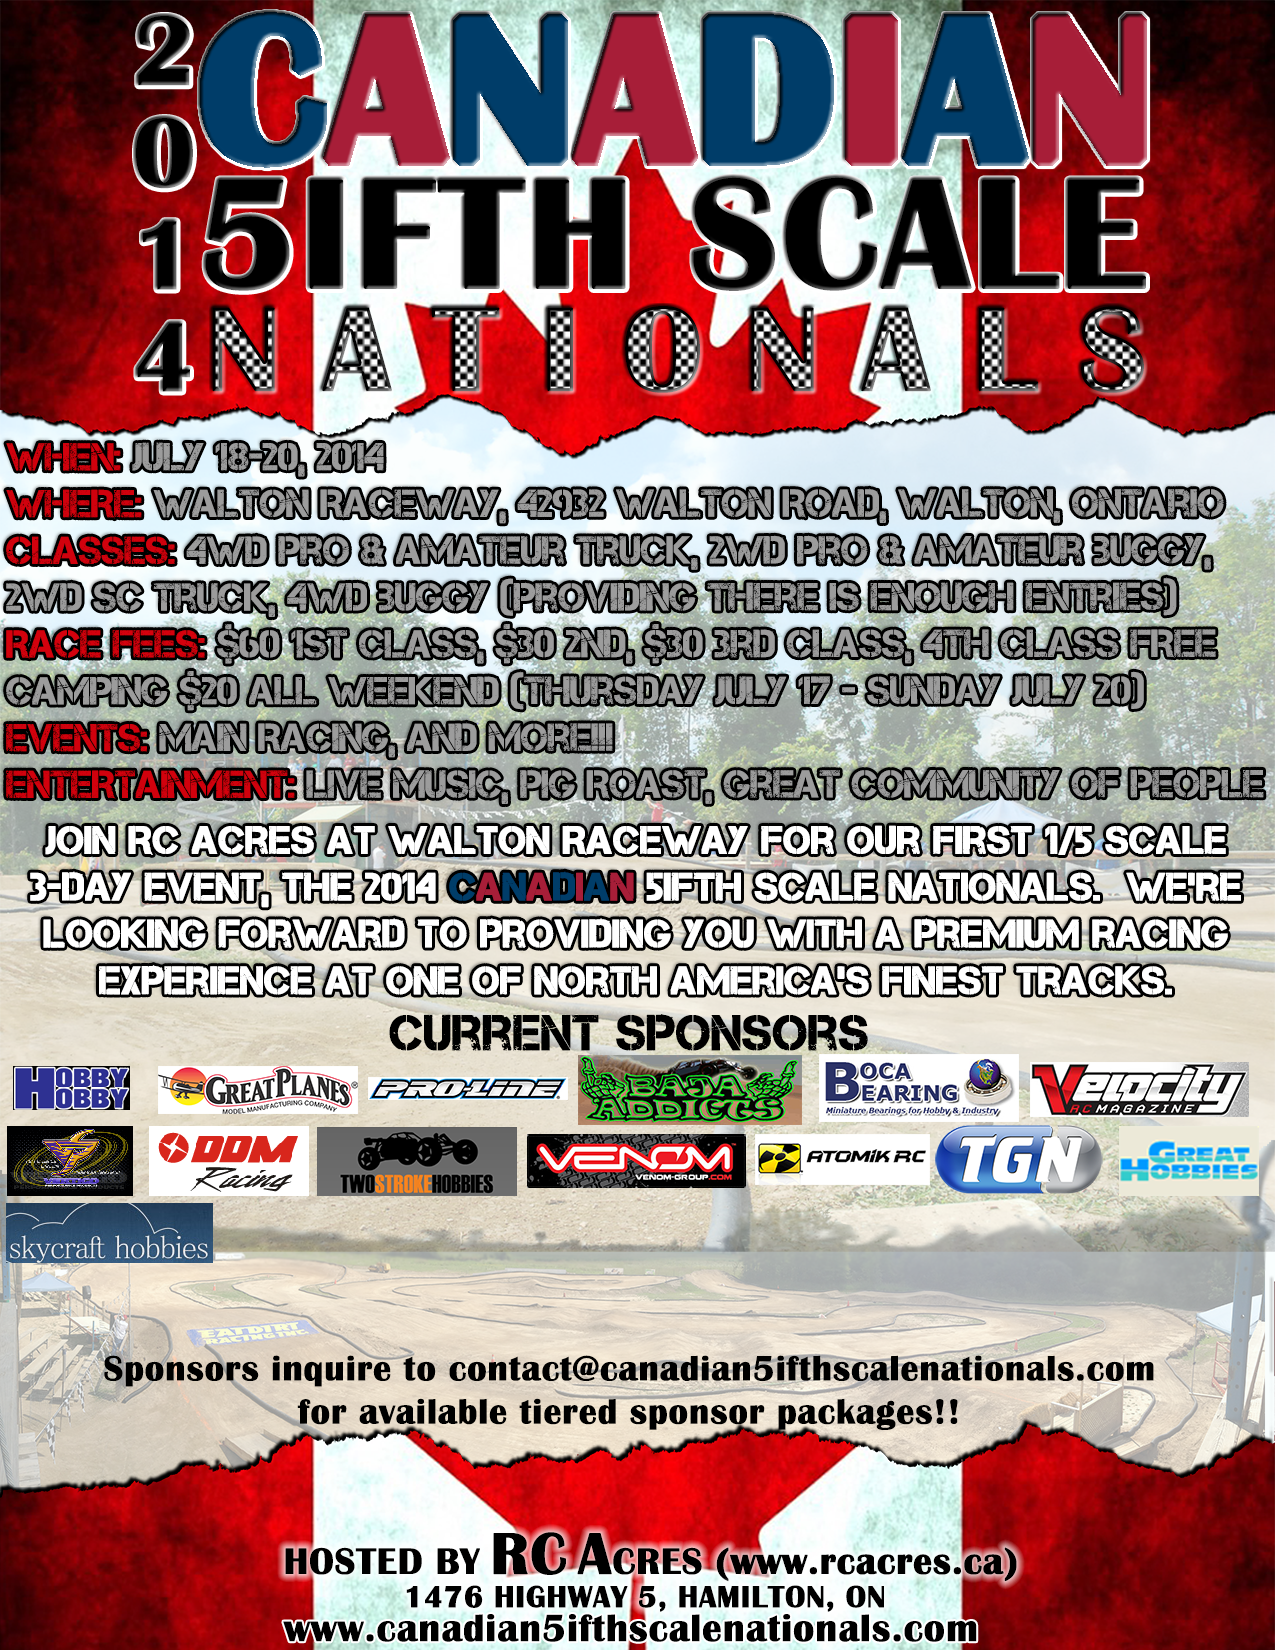 Canadian 5ifth Scale Nationals